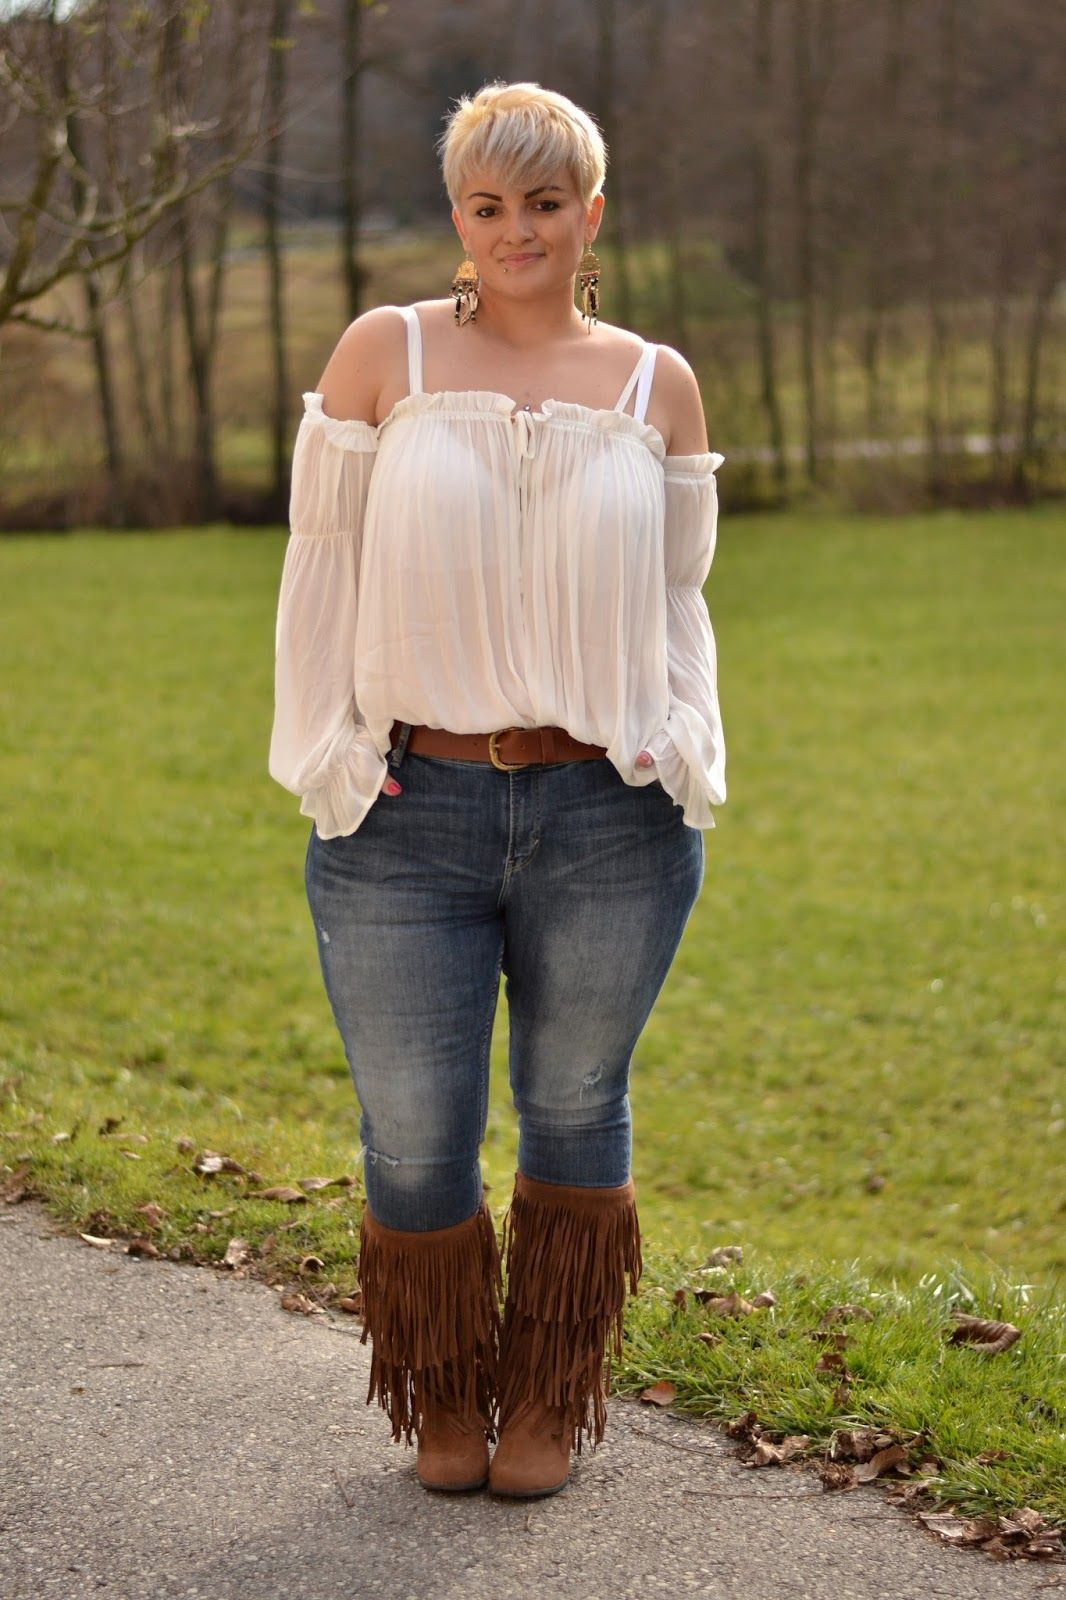 59bcca40b64 Plus Size Fashion - Curvy Claudia  Sheer Blouse and Fringe Boots